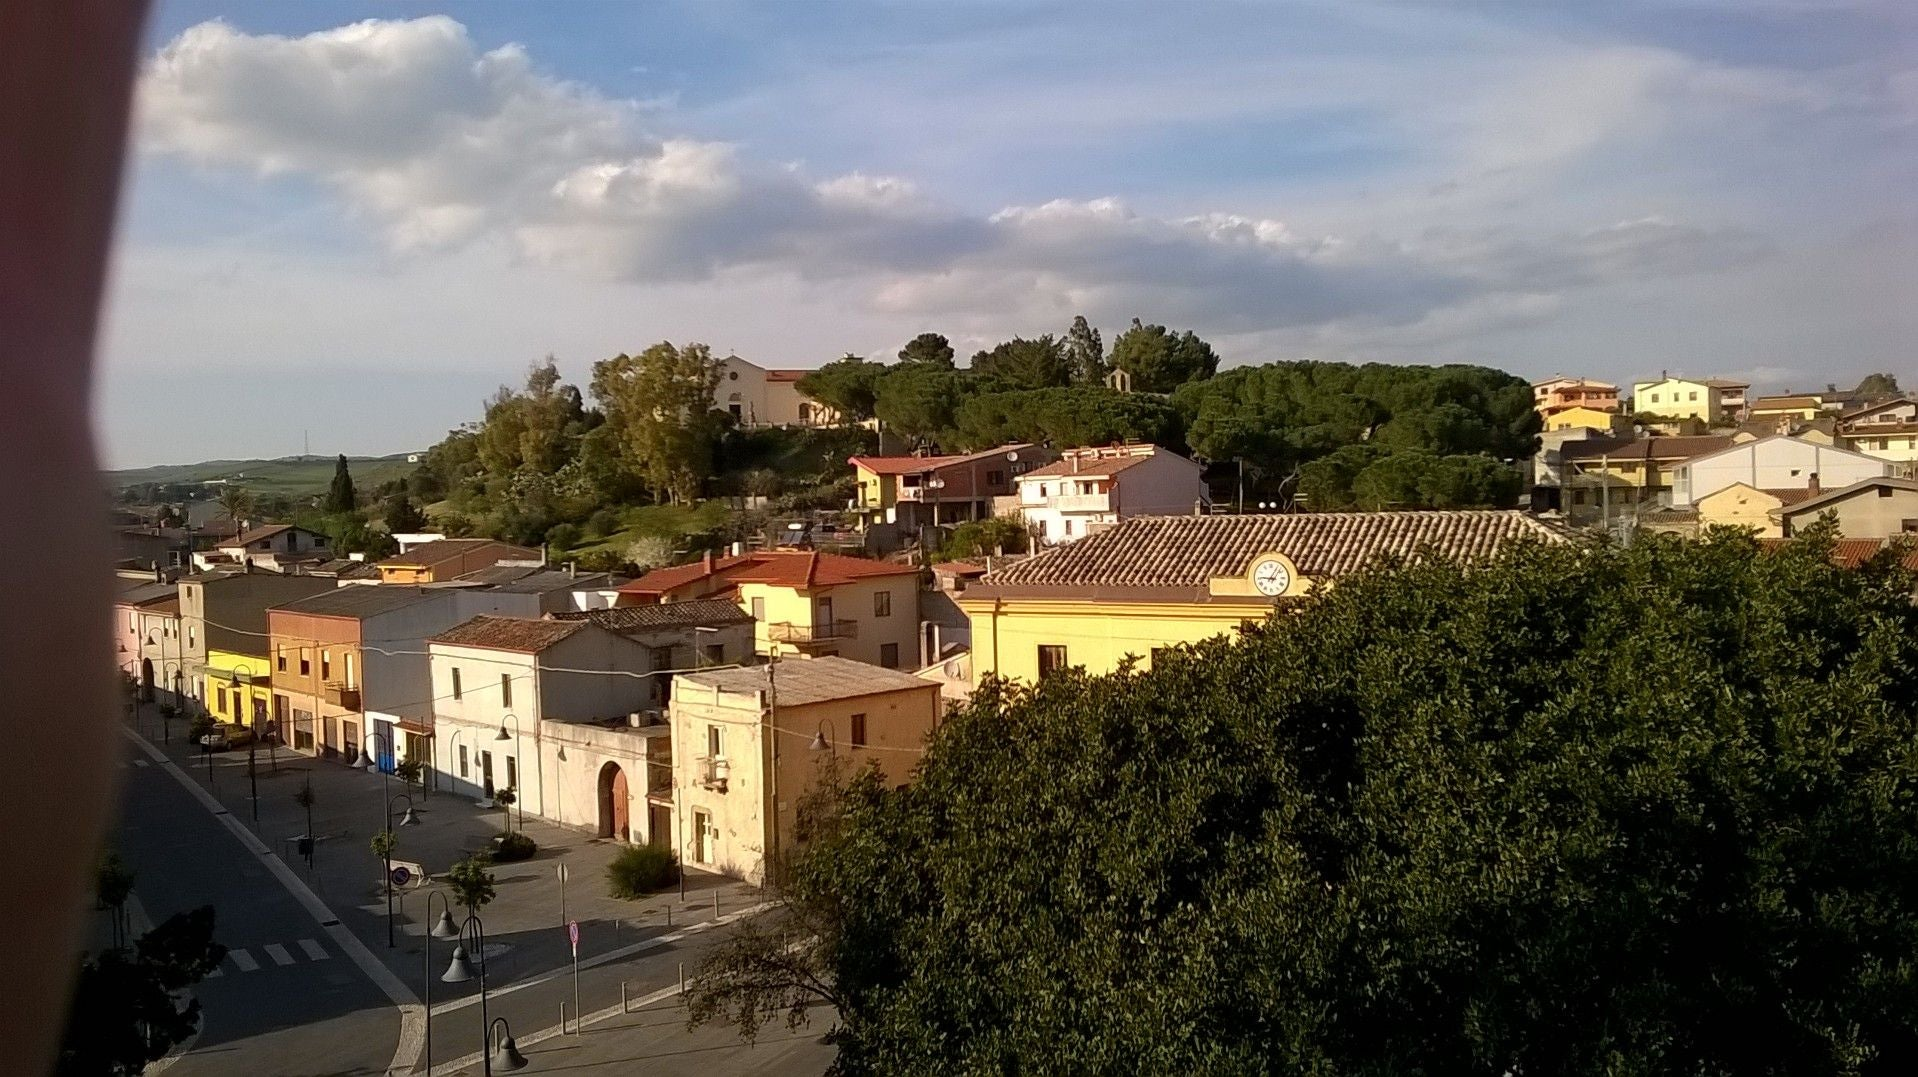 City in Sanluri